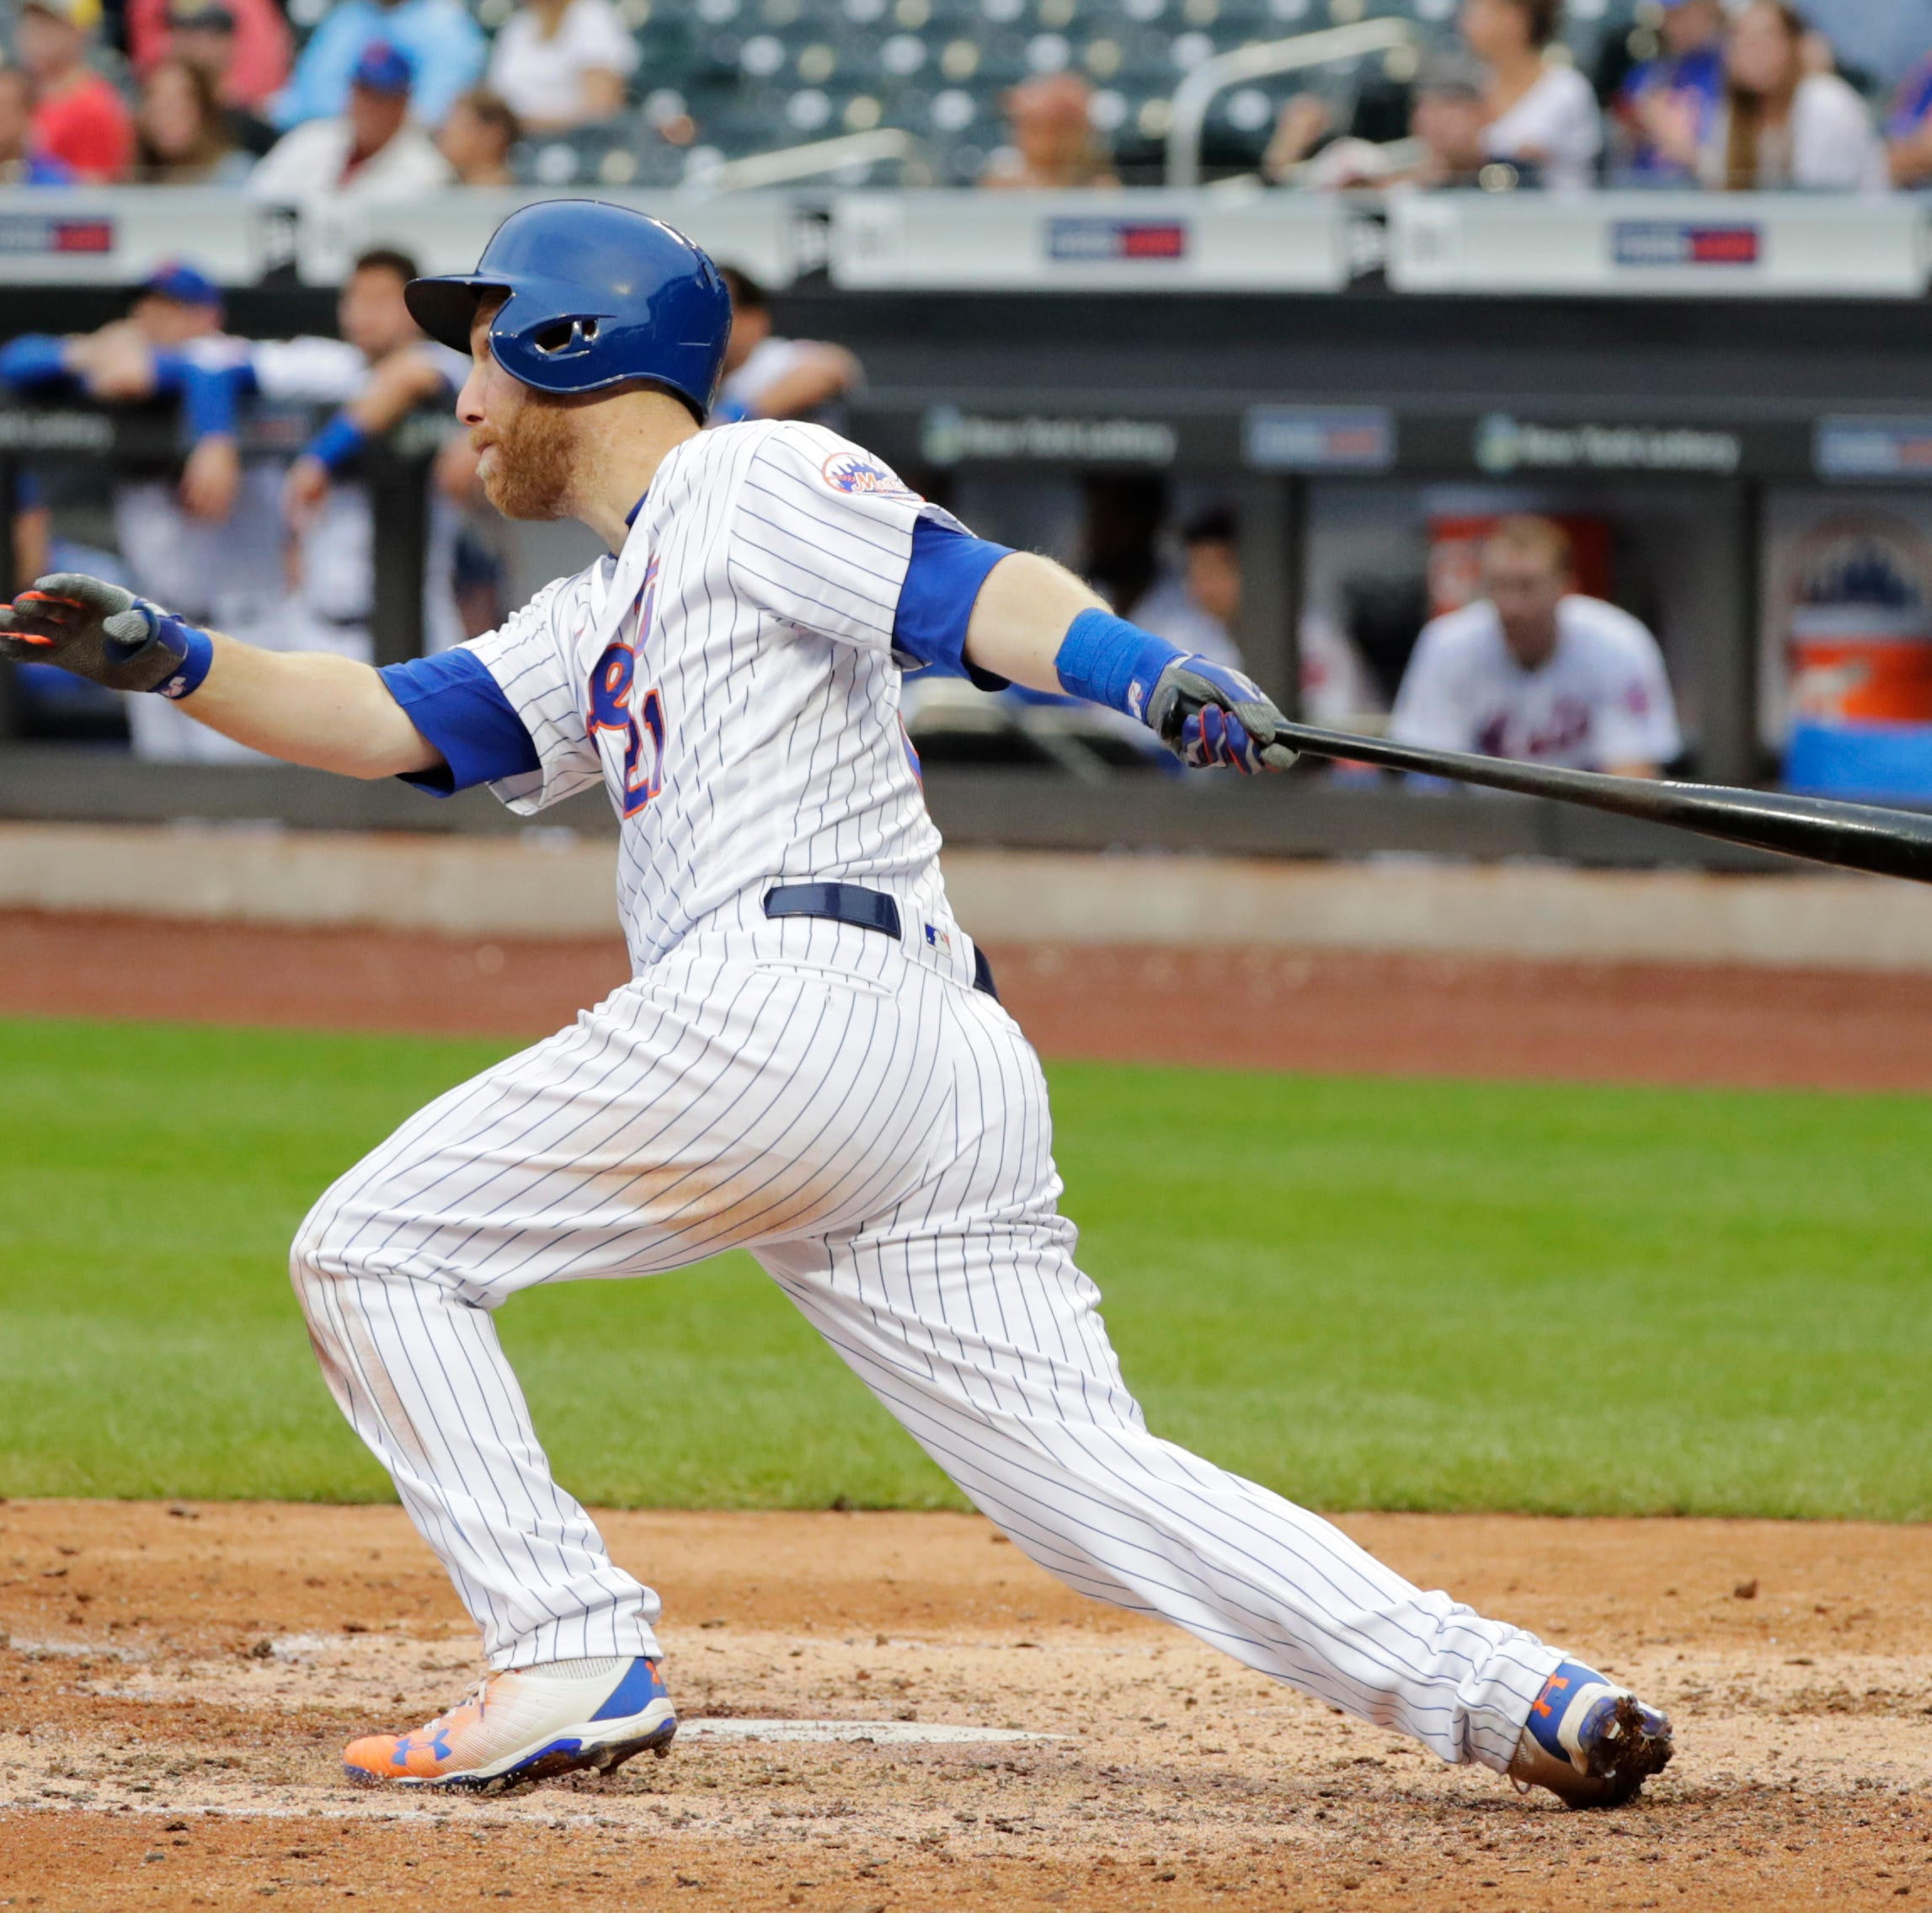 Mets may have to make alternative infield plans with Todd Frazier, Jed Lowrie injuries